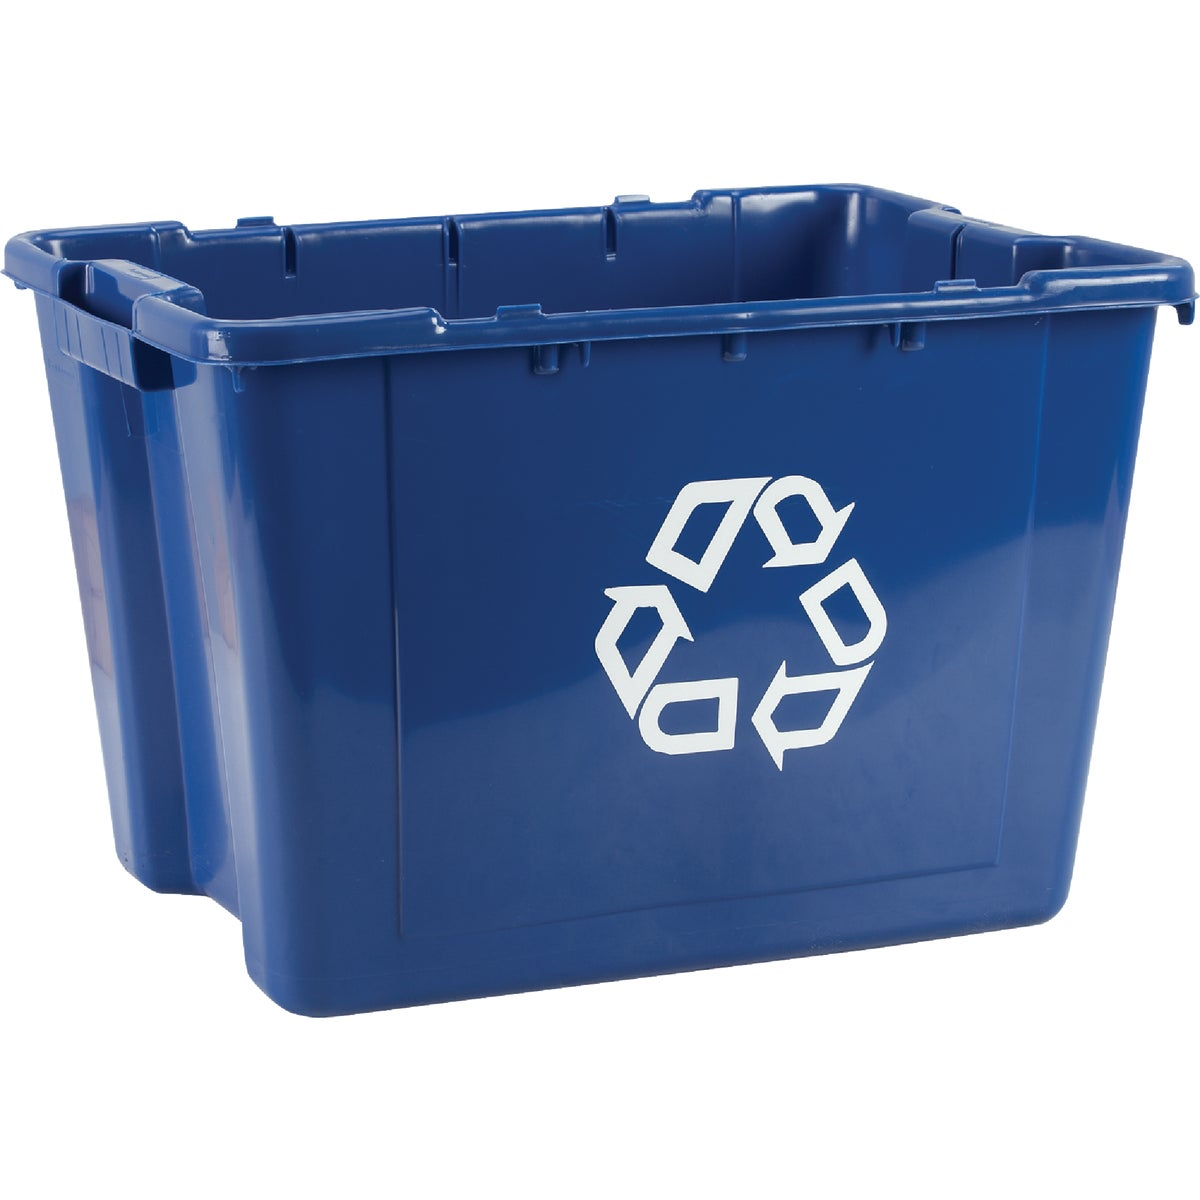 14GAL BLUE RECYCLING BOX - FG571473BLUE by Rubbermaid Comm Prod